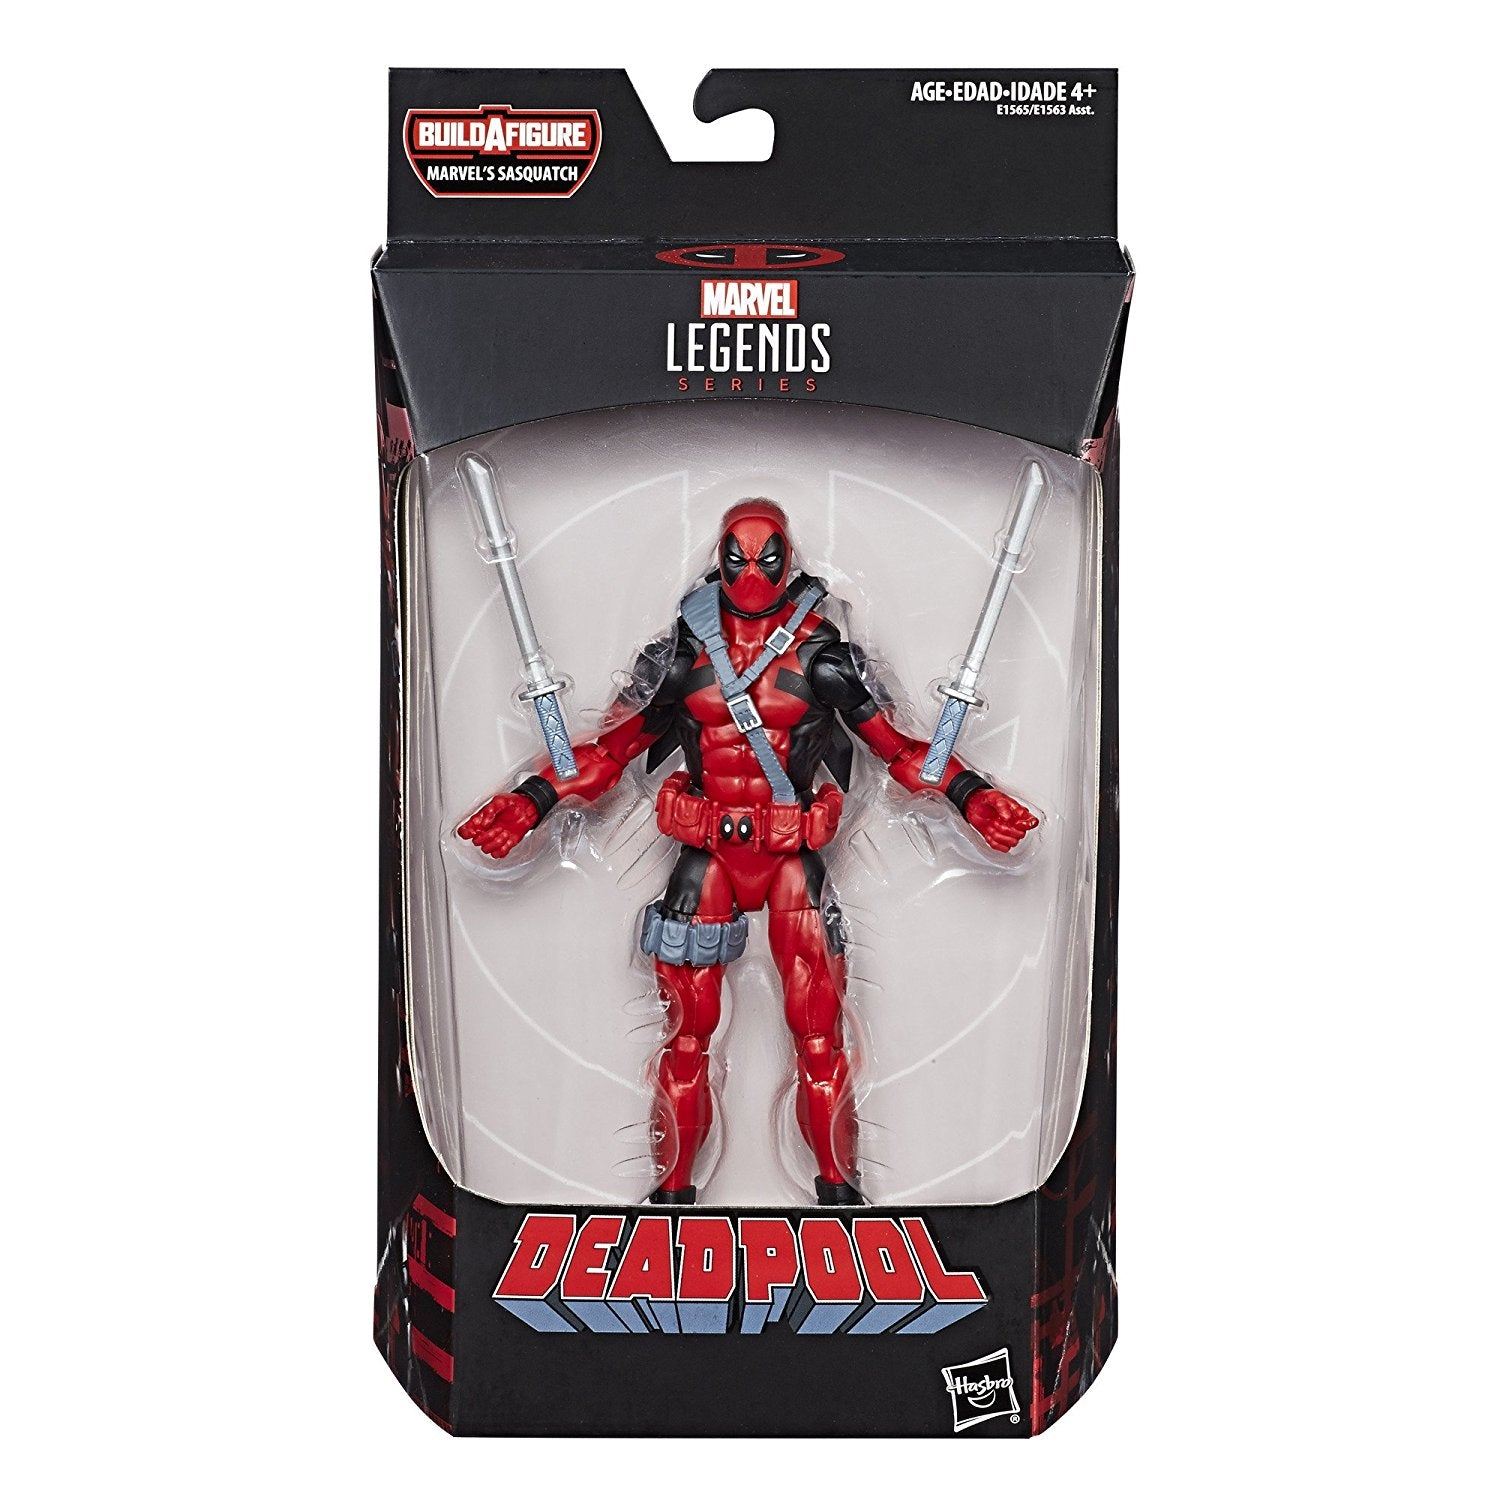 Deadpool Marvel Legends Action Figure Sasquatch Wave